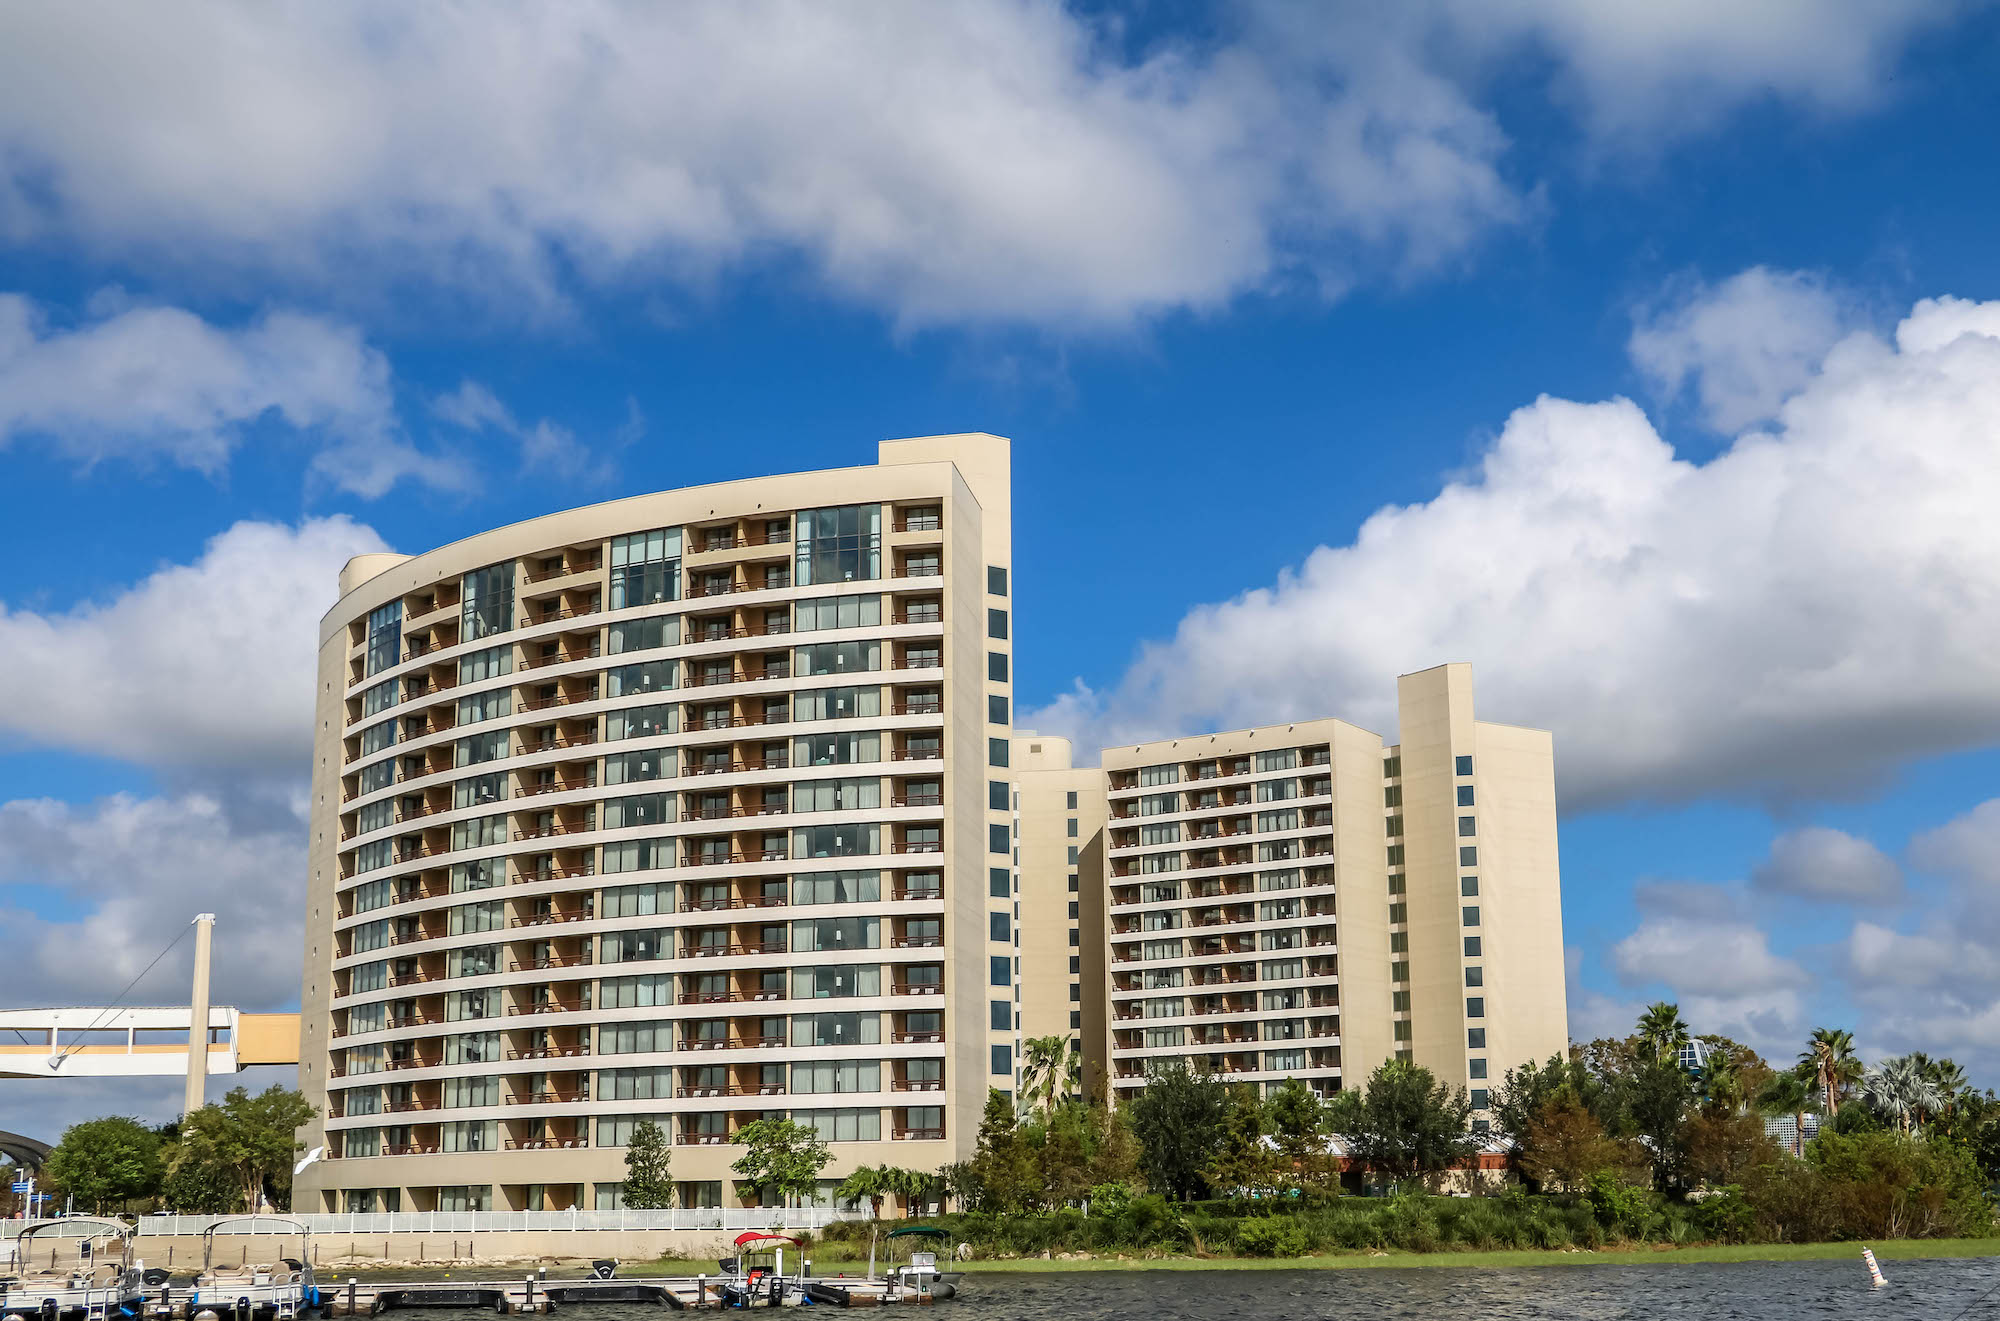 Disney DVC Bay Lake Tower exterior view of resort